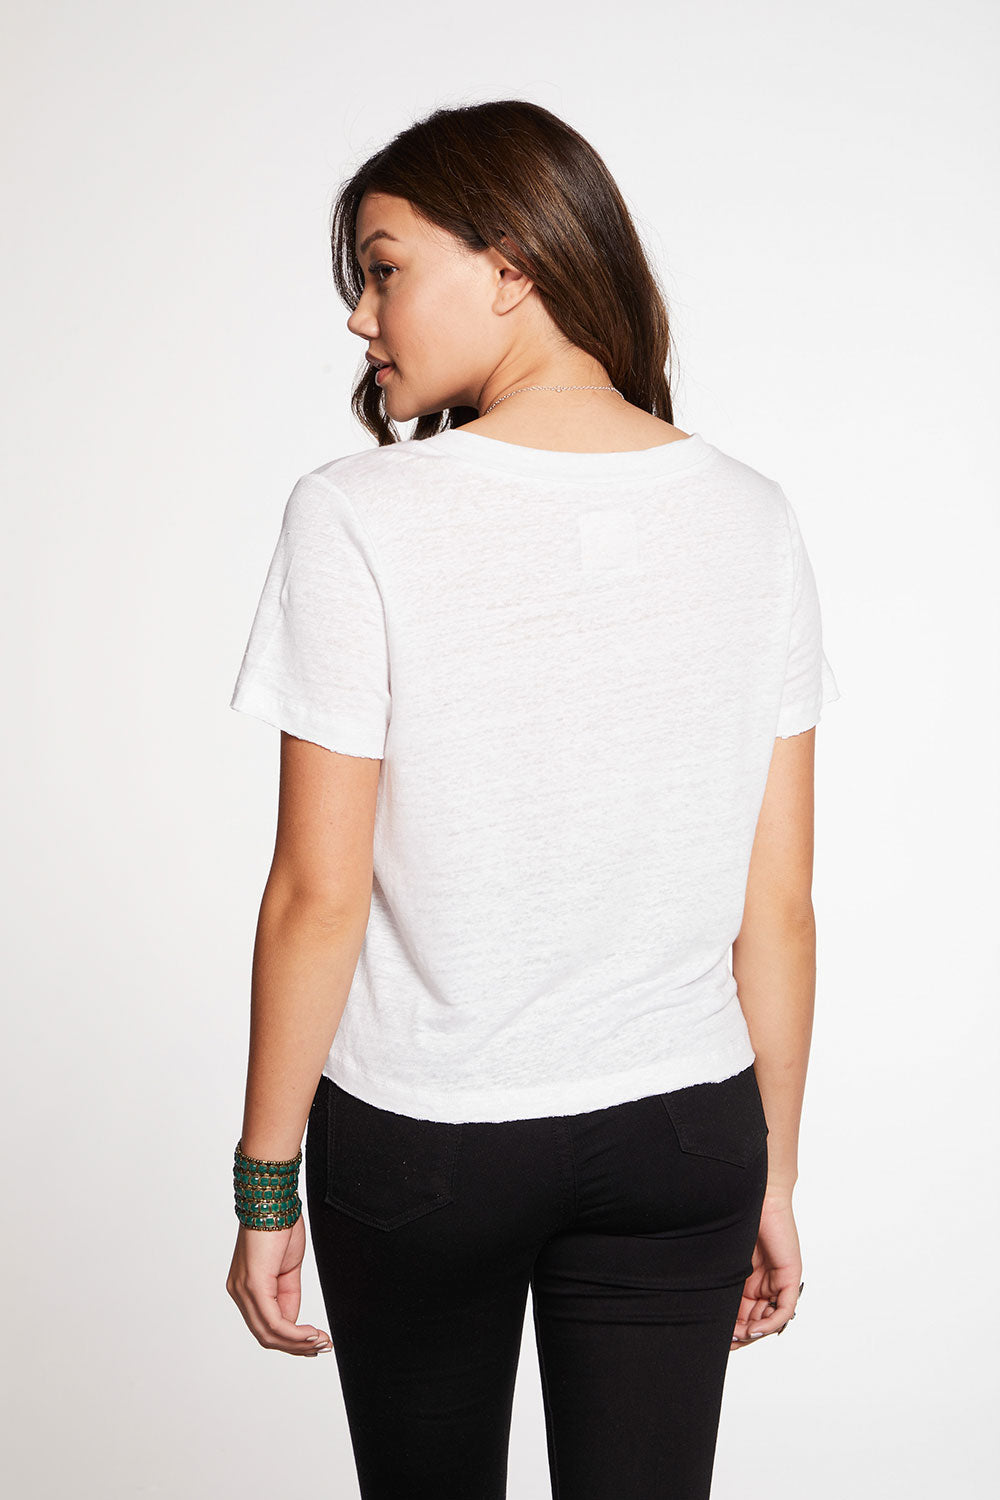 Linen Jersey Cropped Short Sleeve V Neck Tee